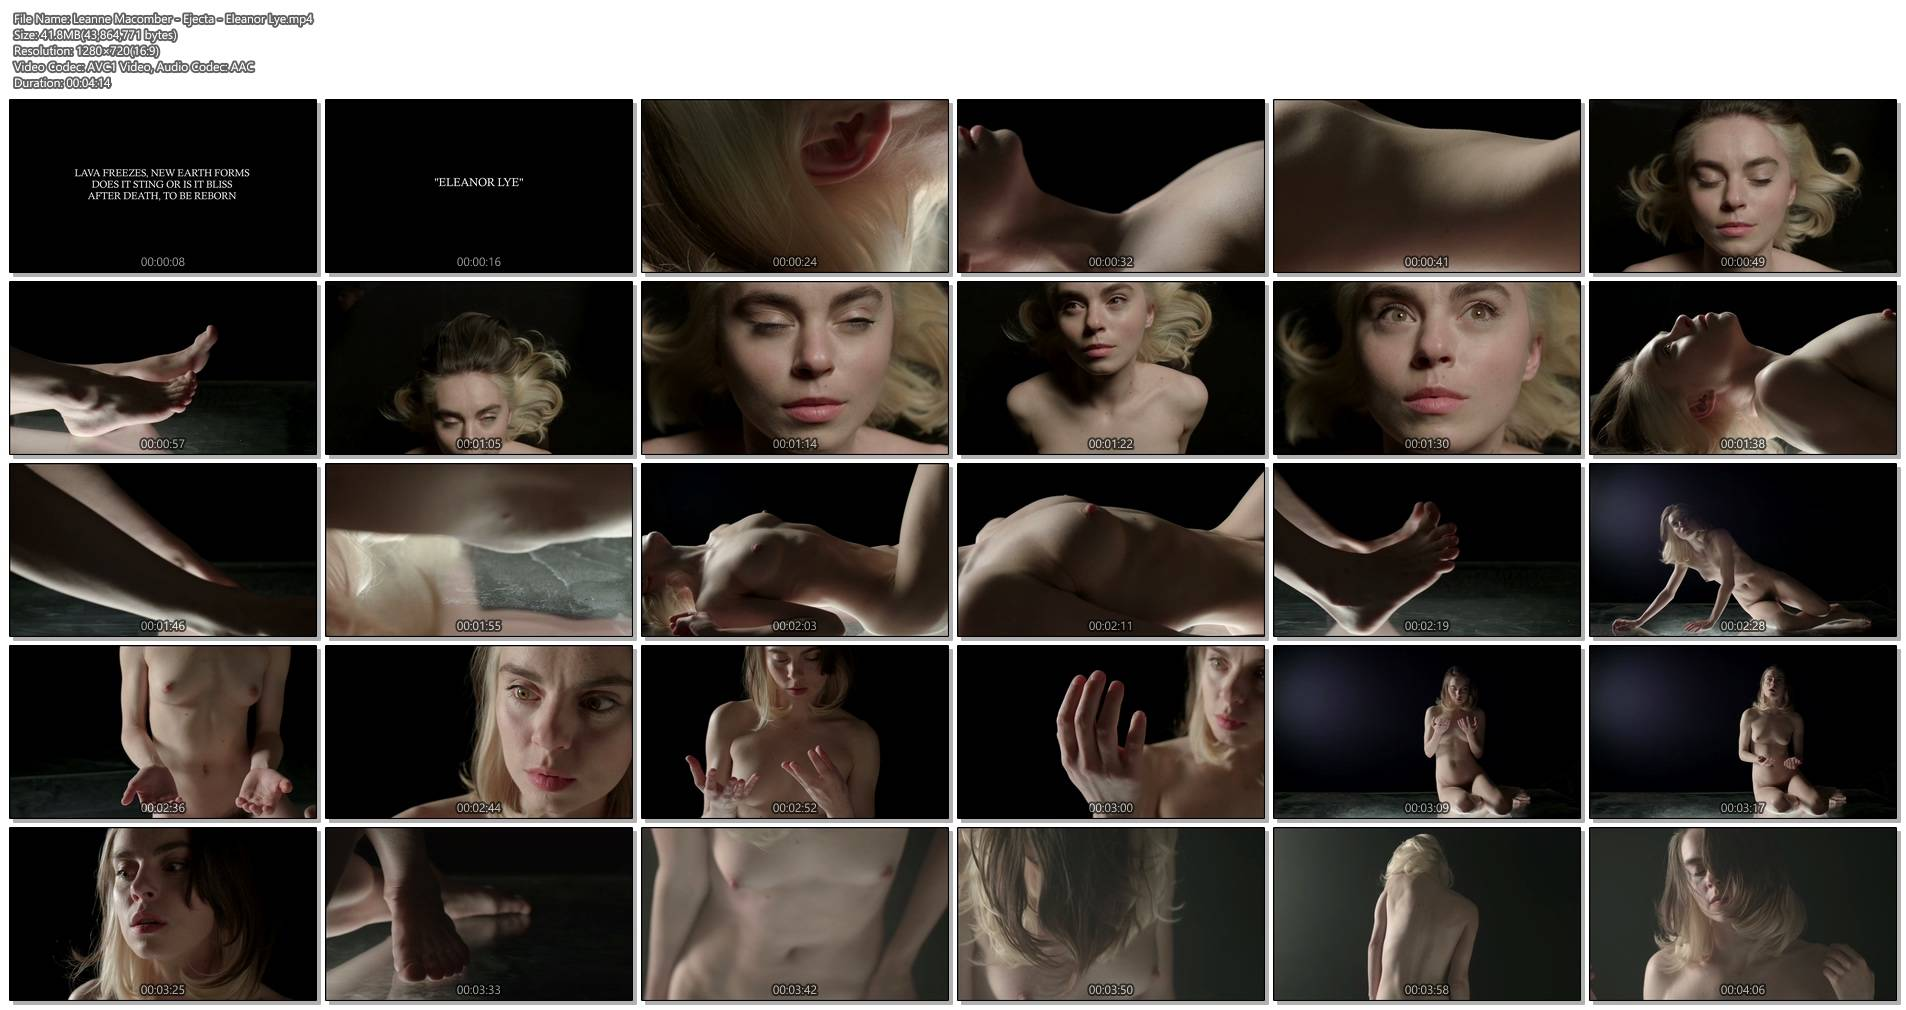 Leanne Macomber nude bush boobs a cute singer from Ejecta - Eleanor Lye (2014) HD 720p (1)